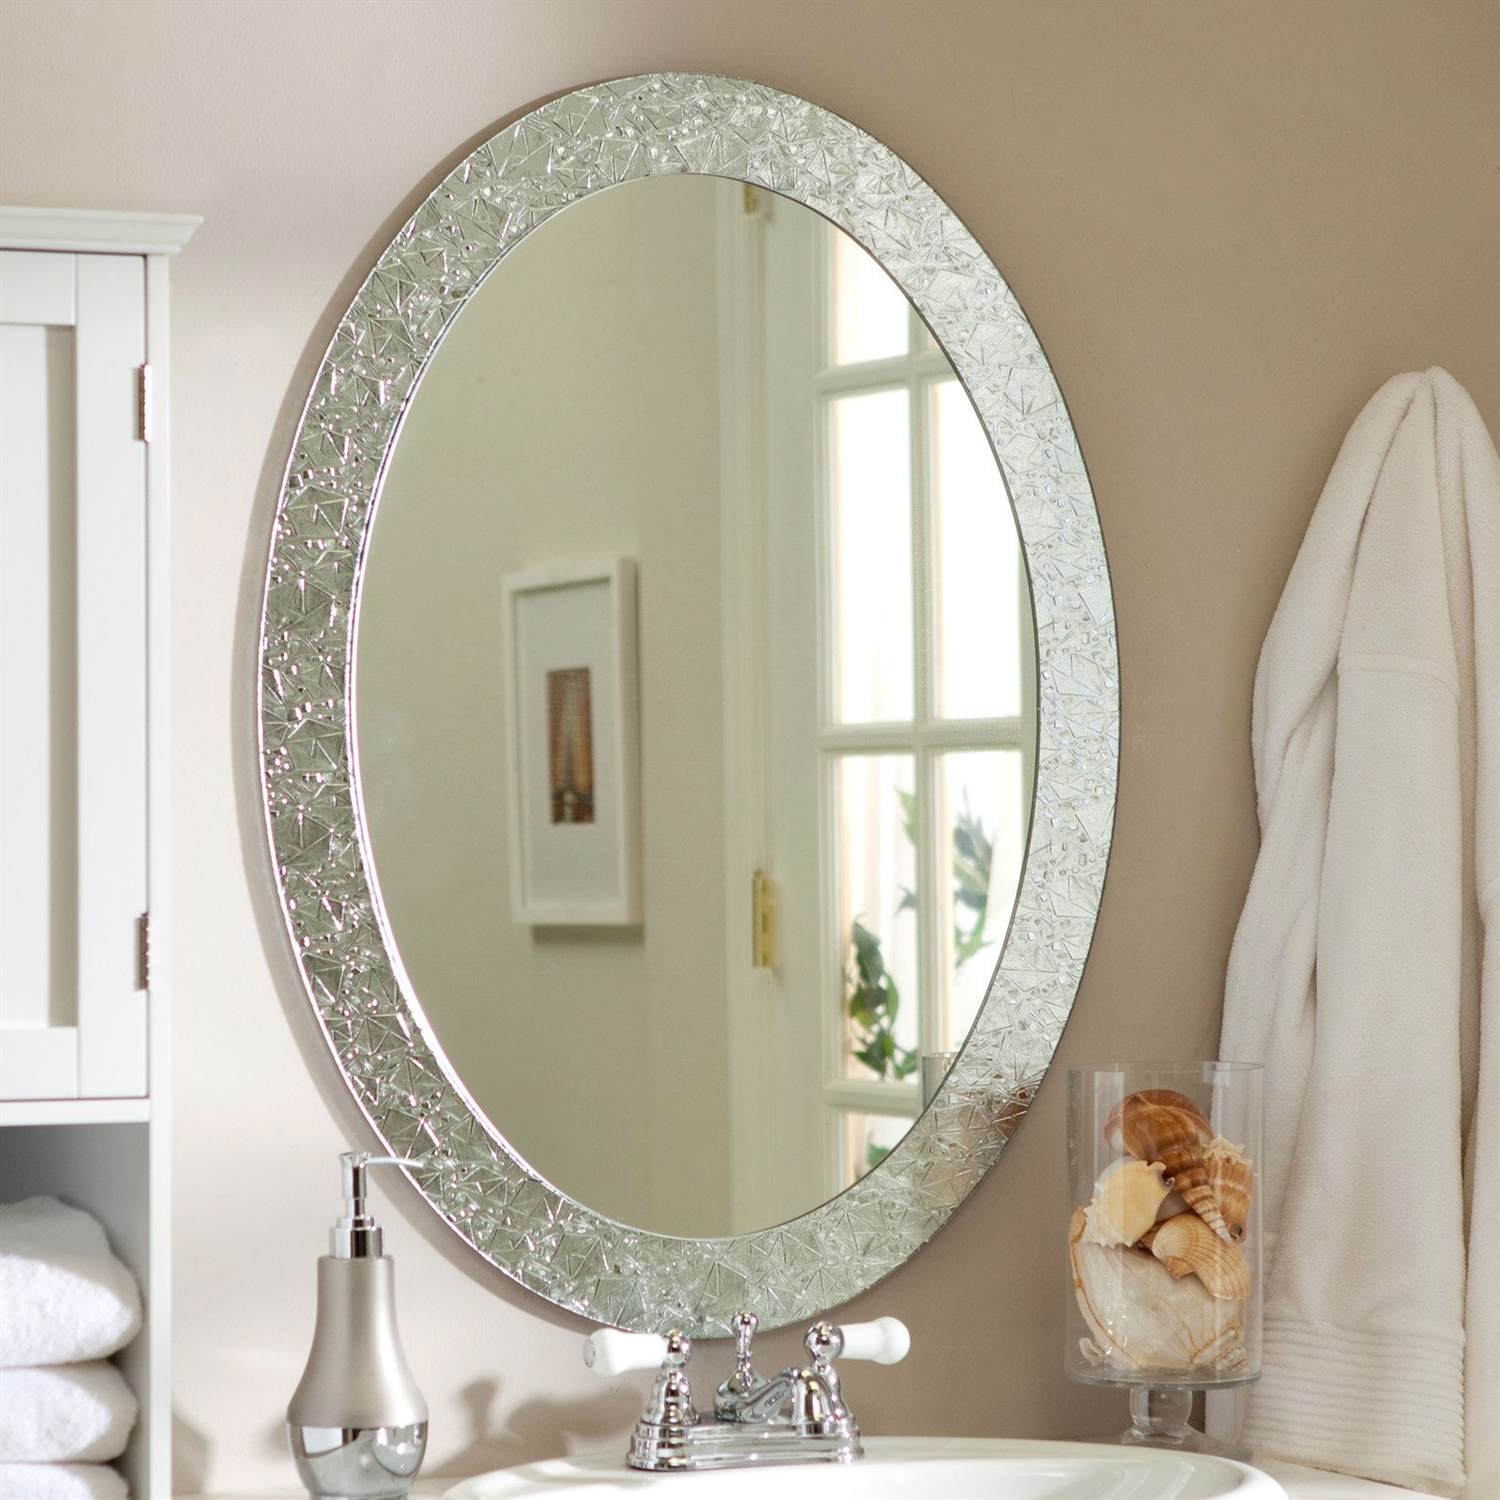 Oval Frame Less Bathroom Vanity Wall Mirror With Elegant